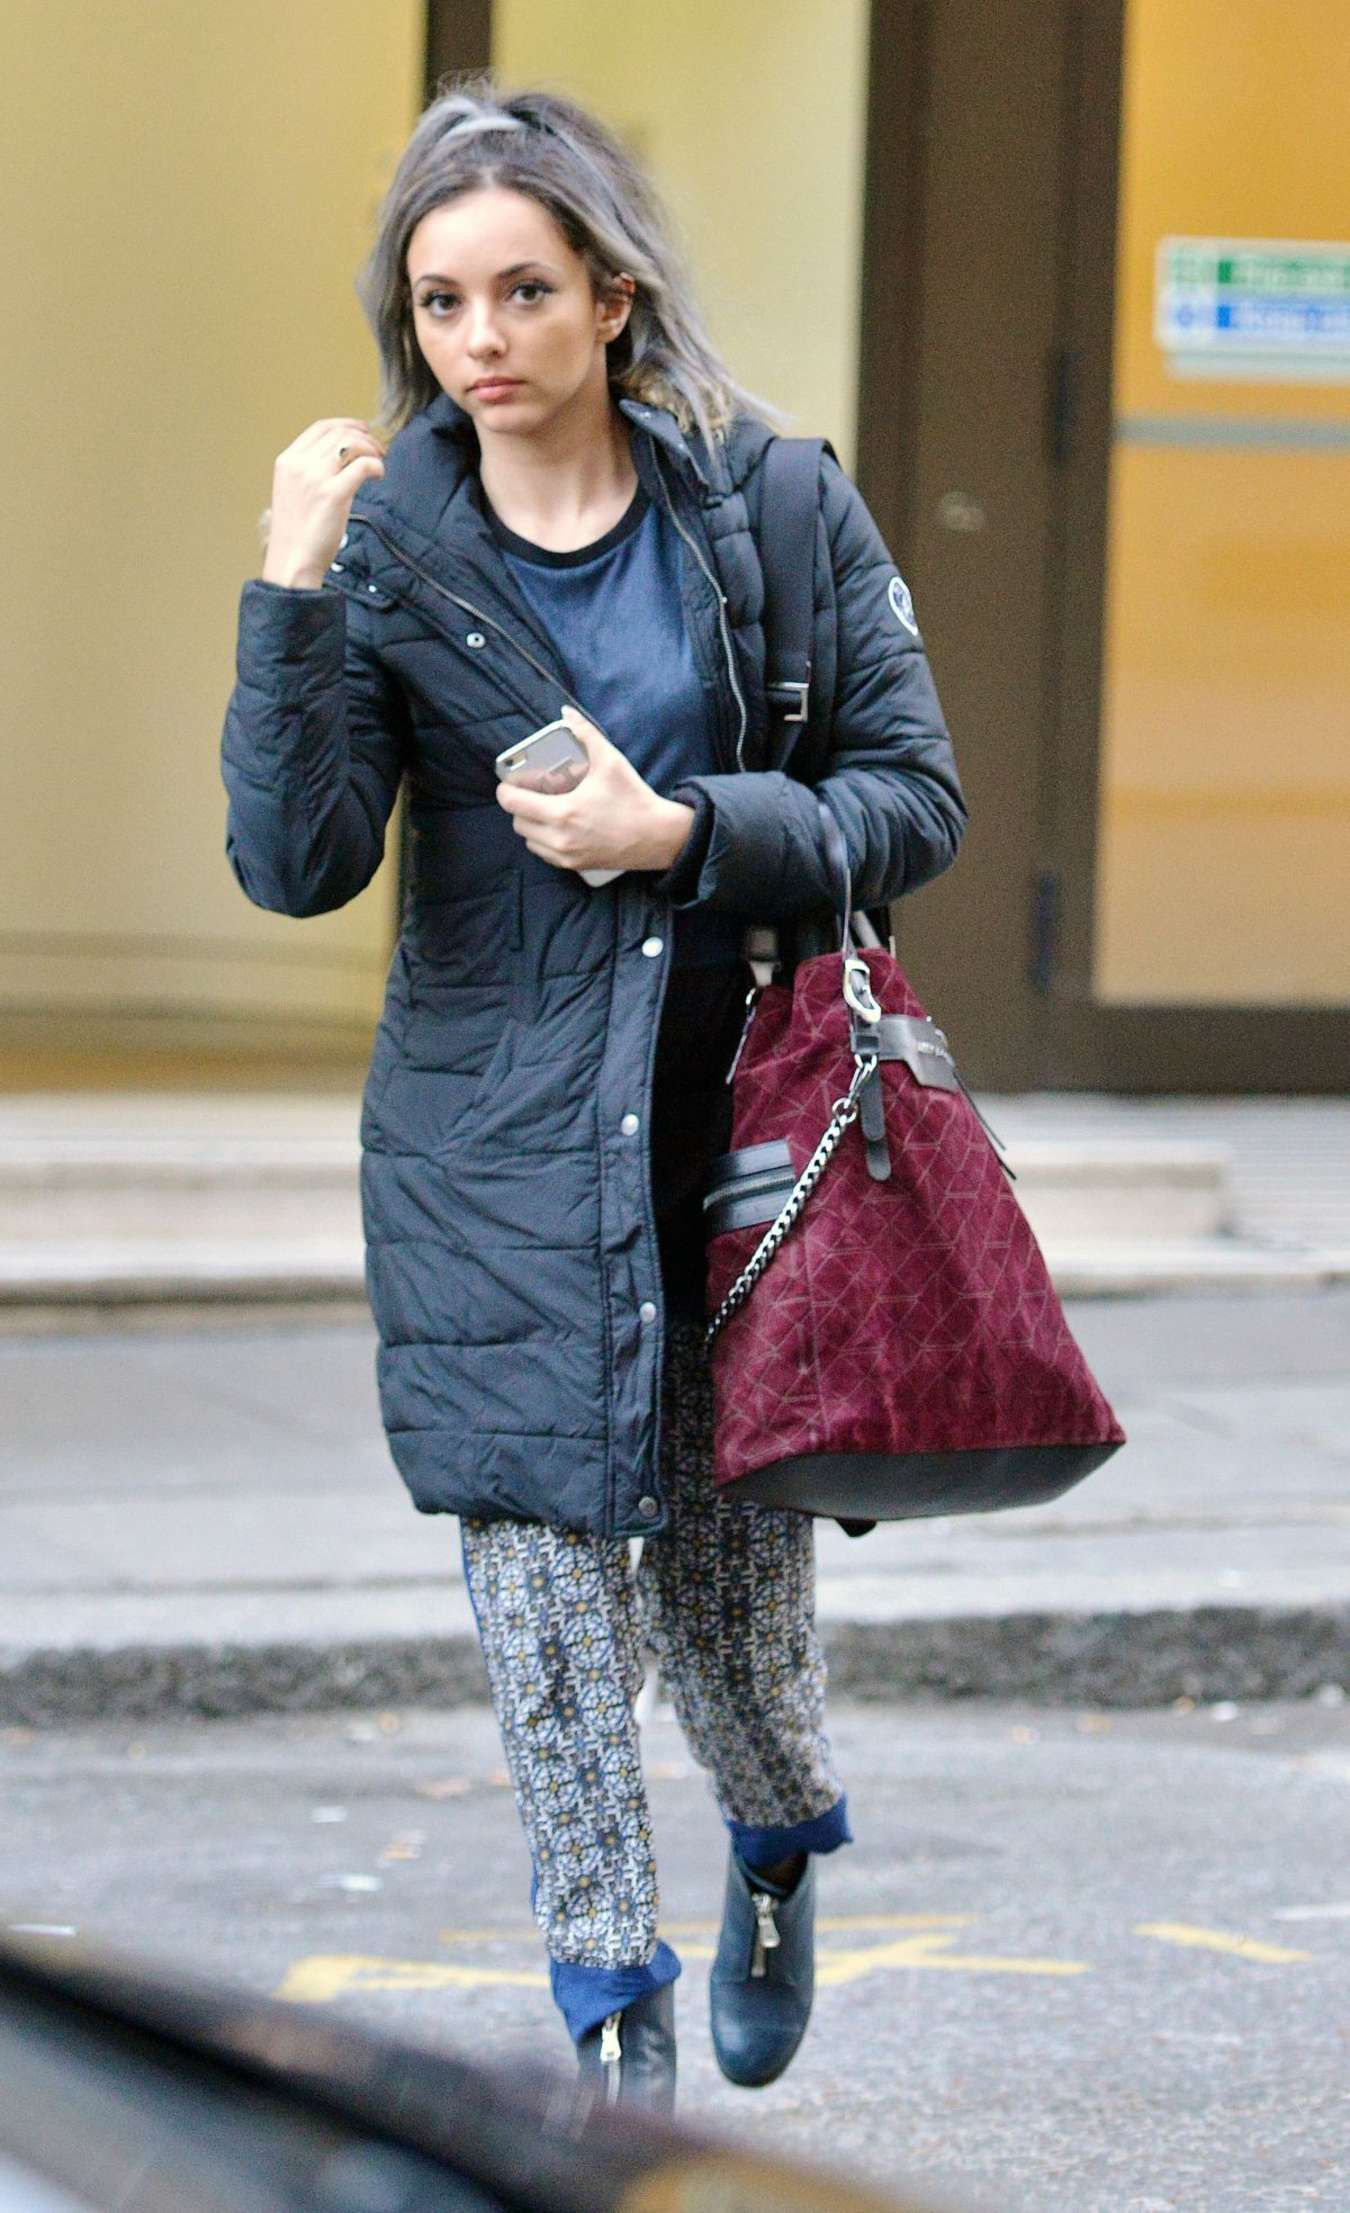 Jade Thirlwall Leaving Sony offices in London